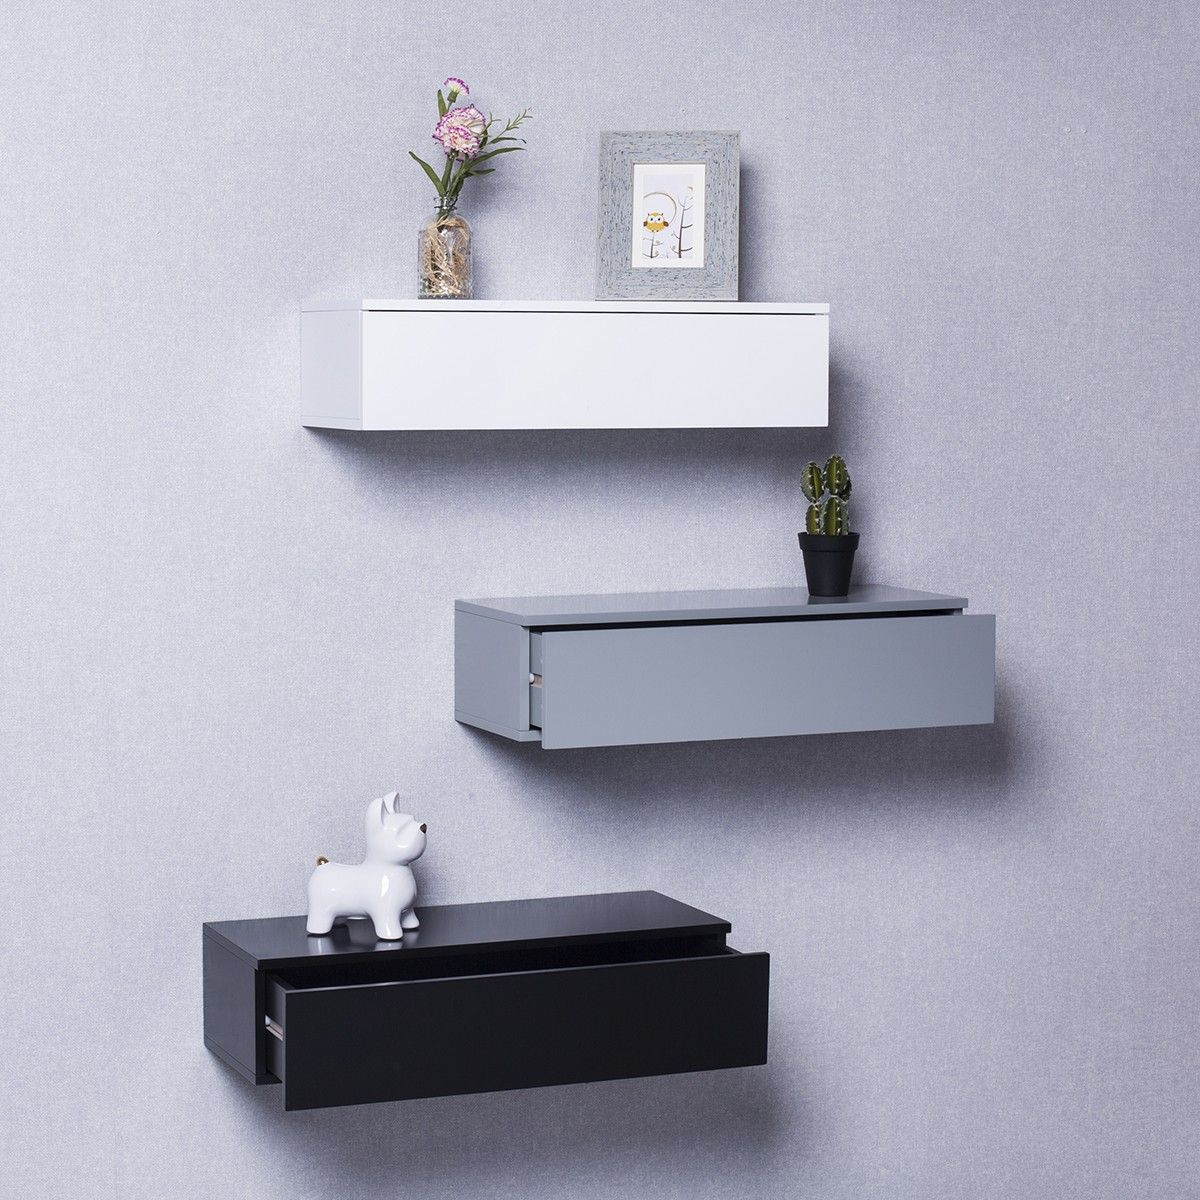 Senja Wall Drawer Black Floating Drawer Drawers Floating